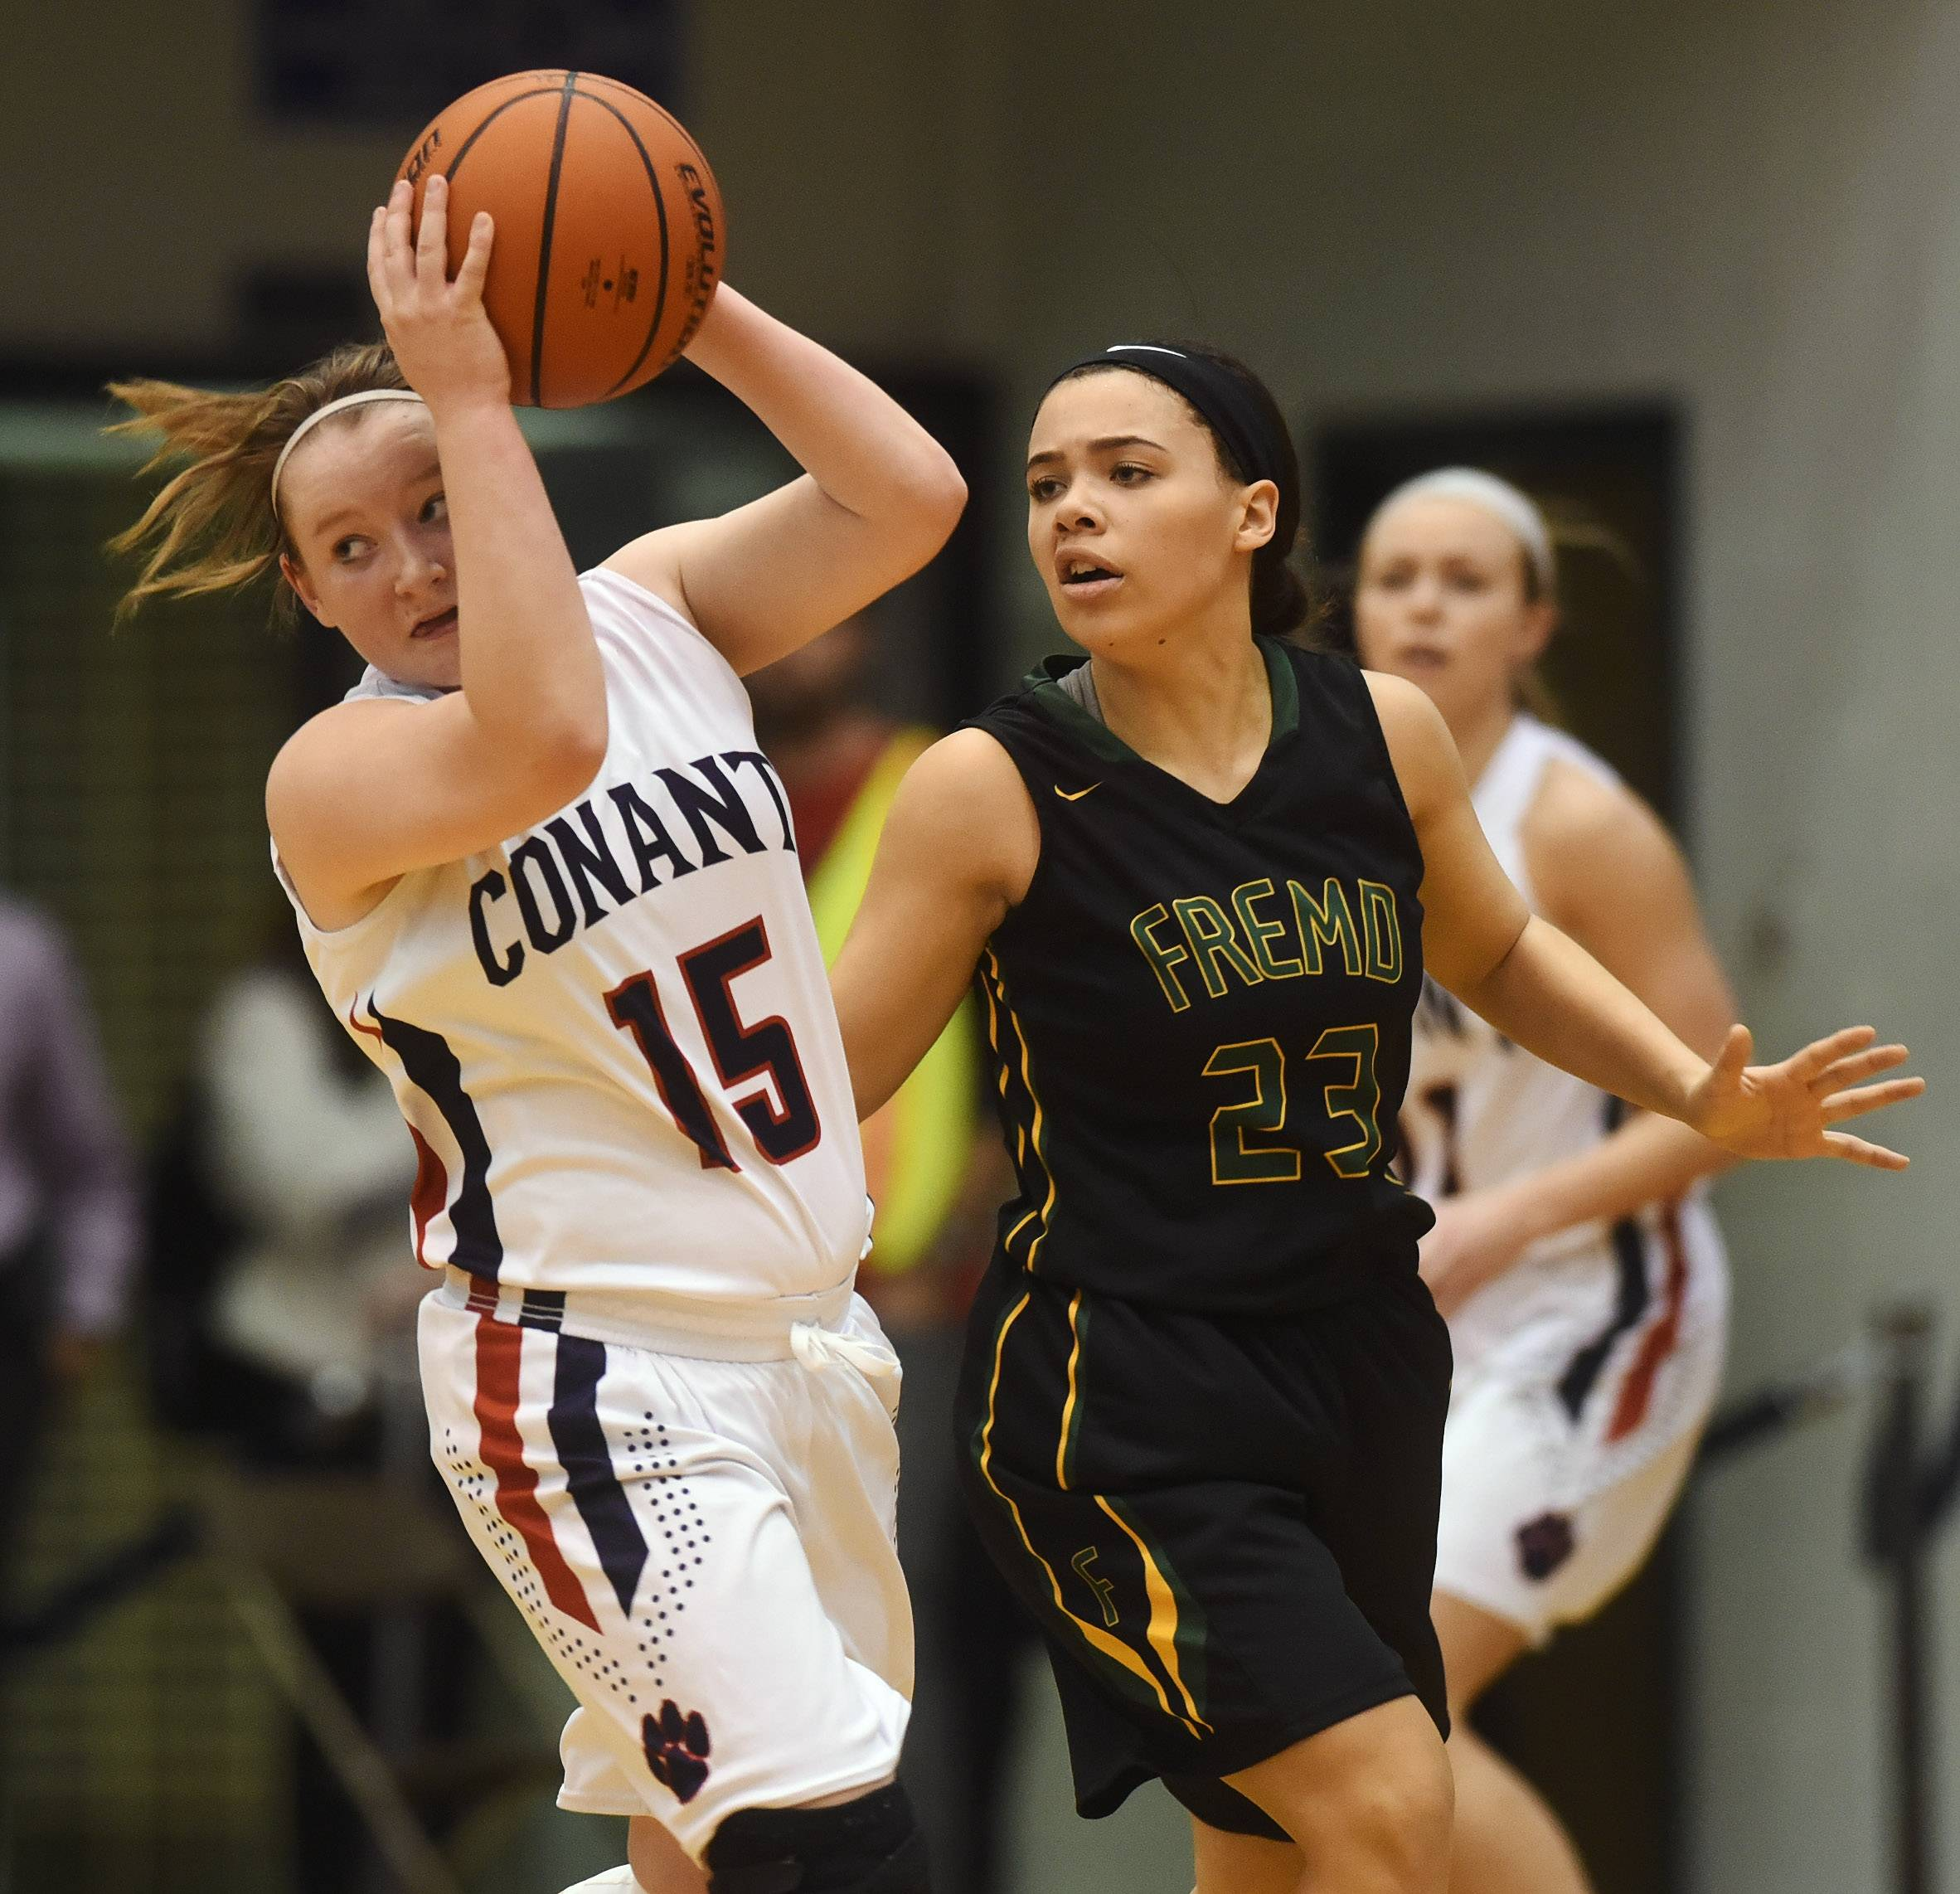 Conant's Cate Fitzgerald, left, looks for an open teammate while being pressured by Fremd's Hayley Williams during Friday's game in Hoffman Estates.